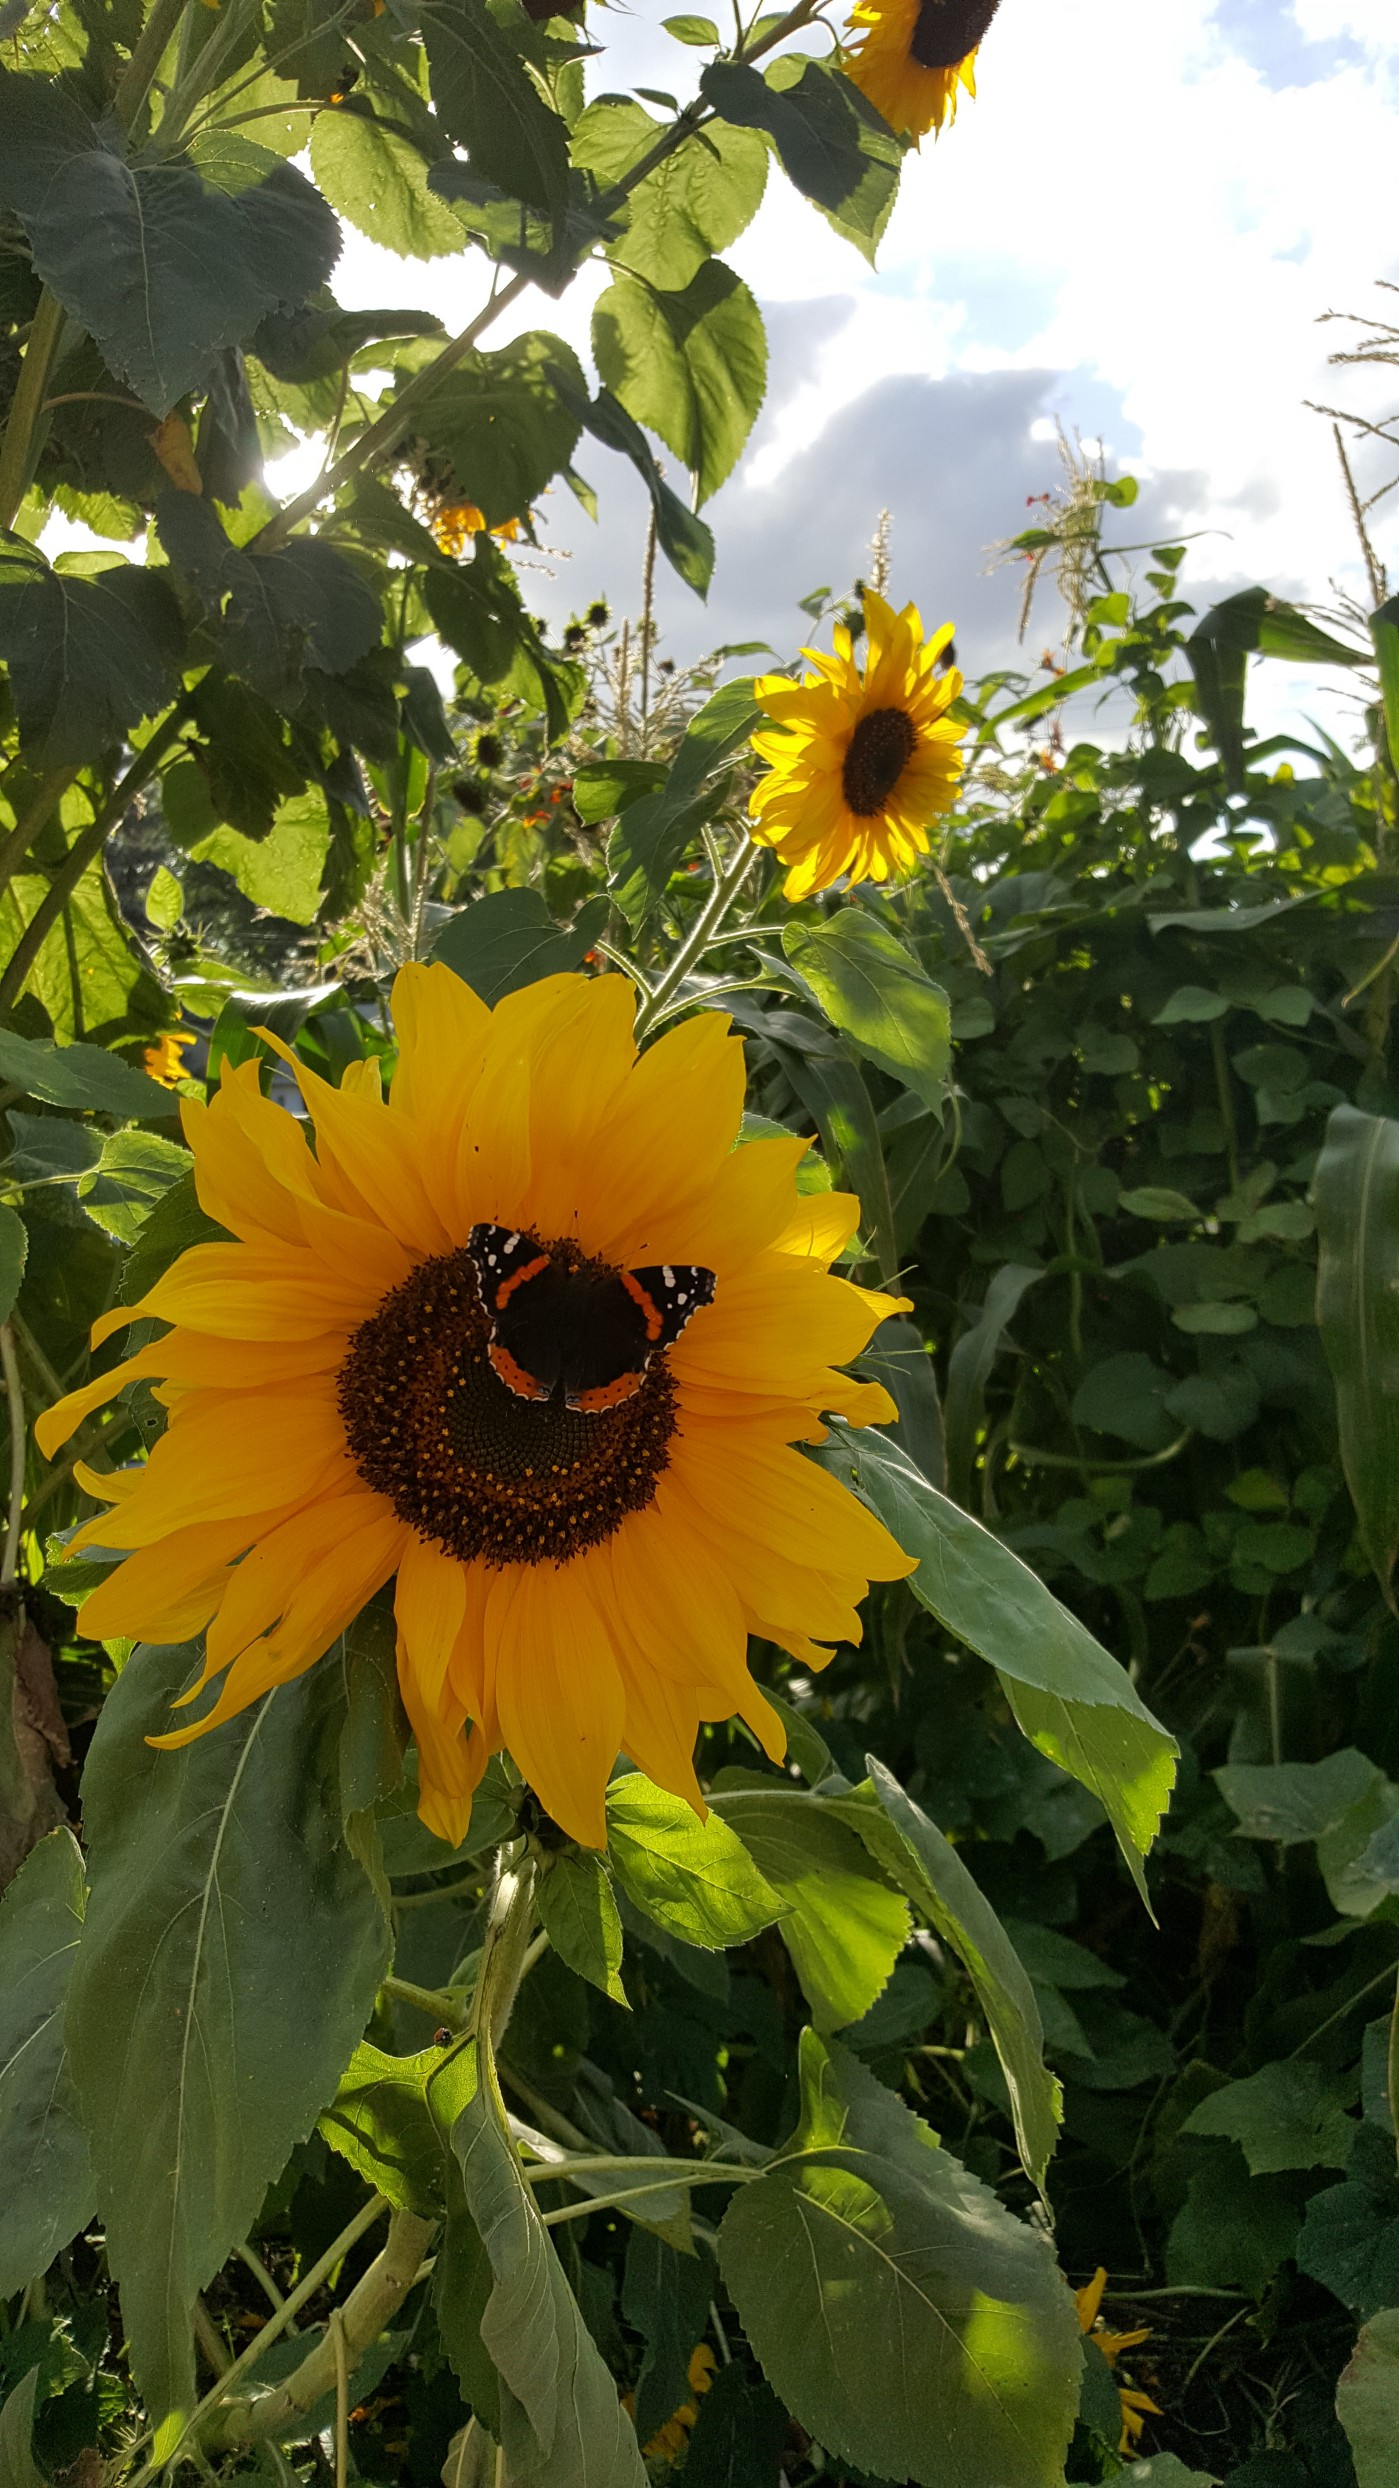 A monarch butterfly sitting in the center of a sunflower. A beam of light shines through the foliage of the plants in the background.